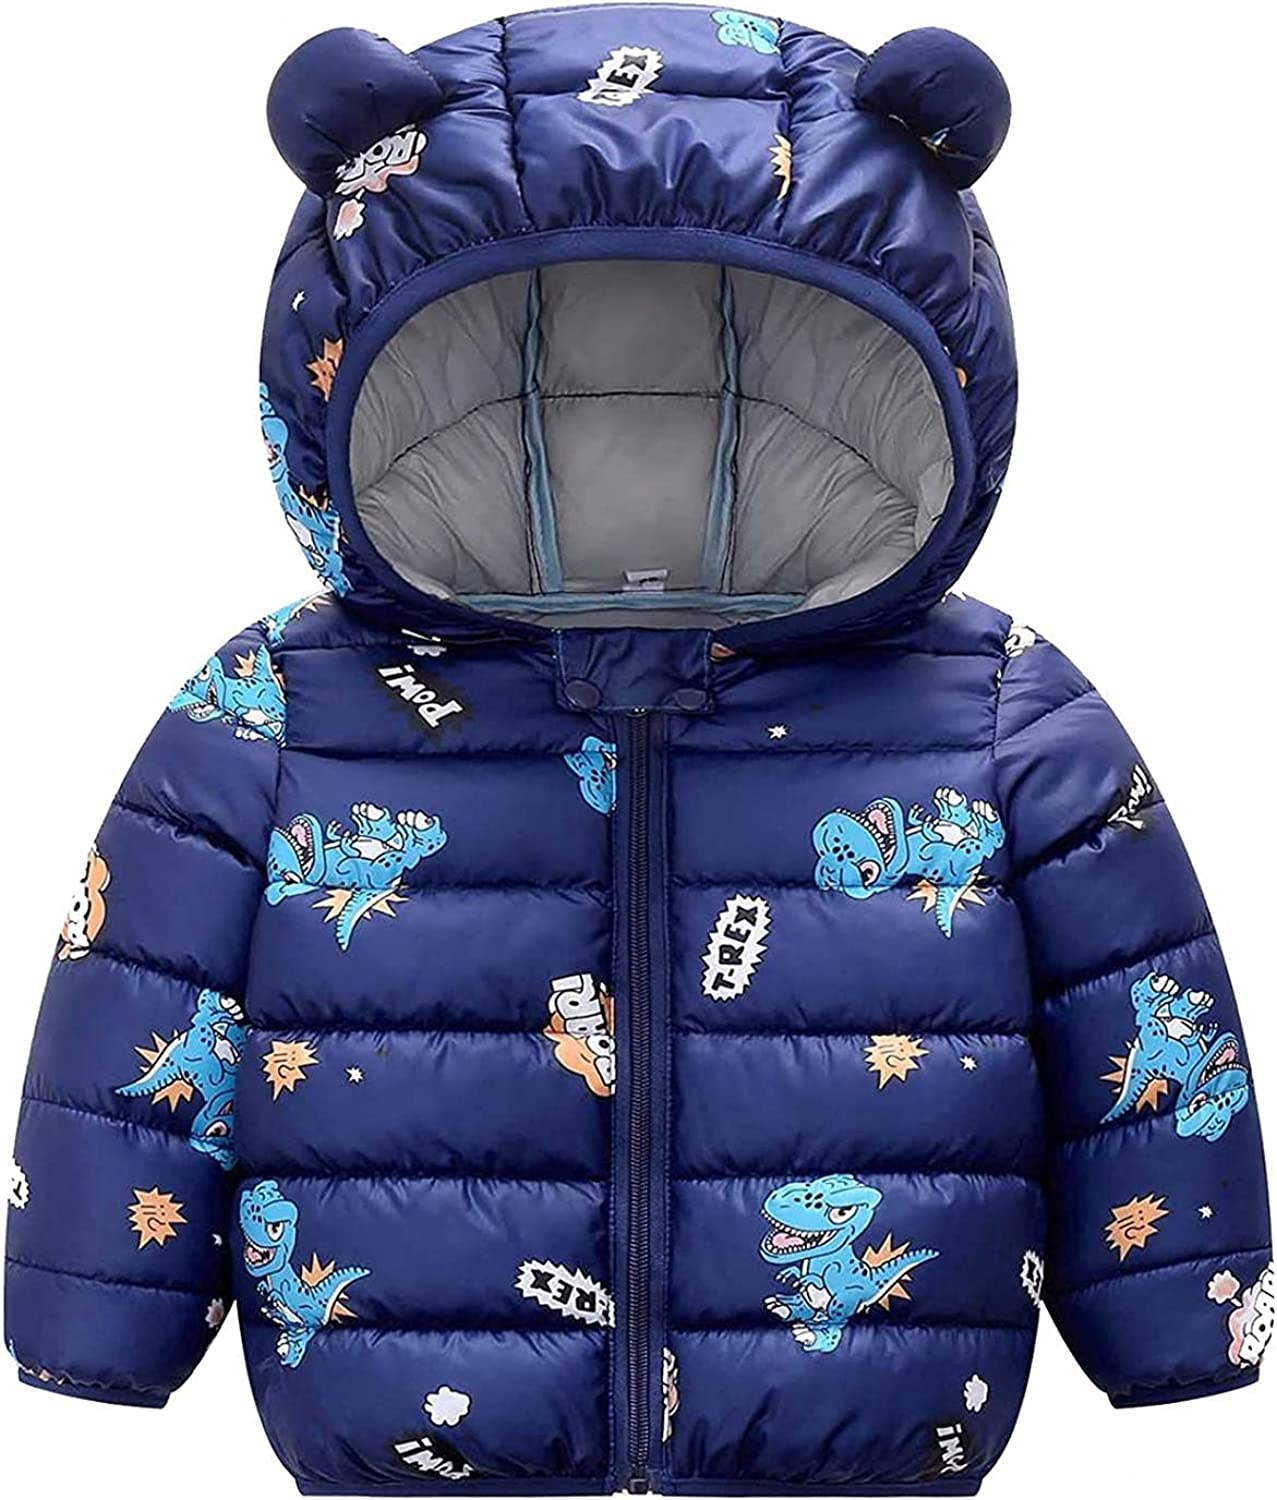 Toddler Industry No. 1 Puffer Jackets Baby Super popular specialty store Boy Co Cartoon Windproof Winter Girl